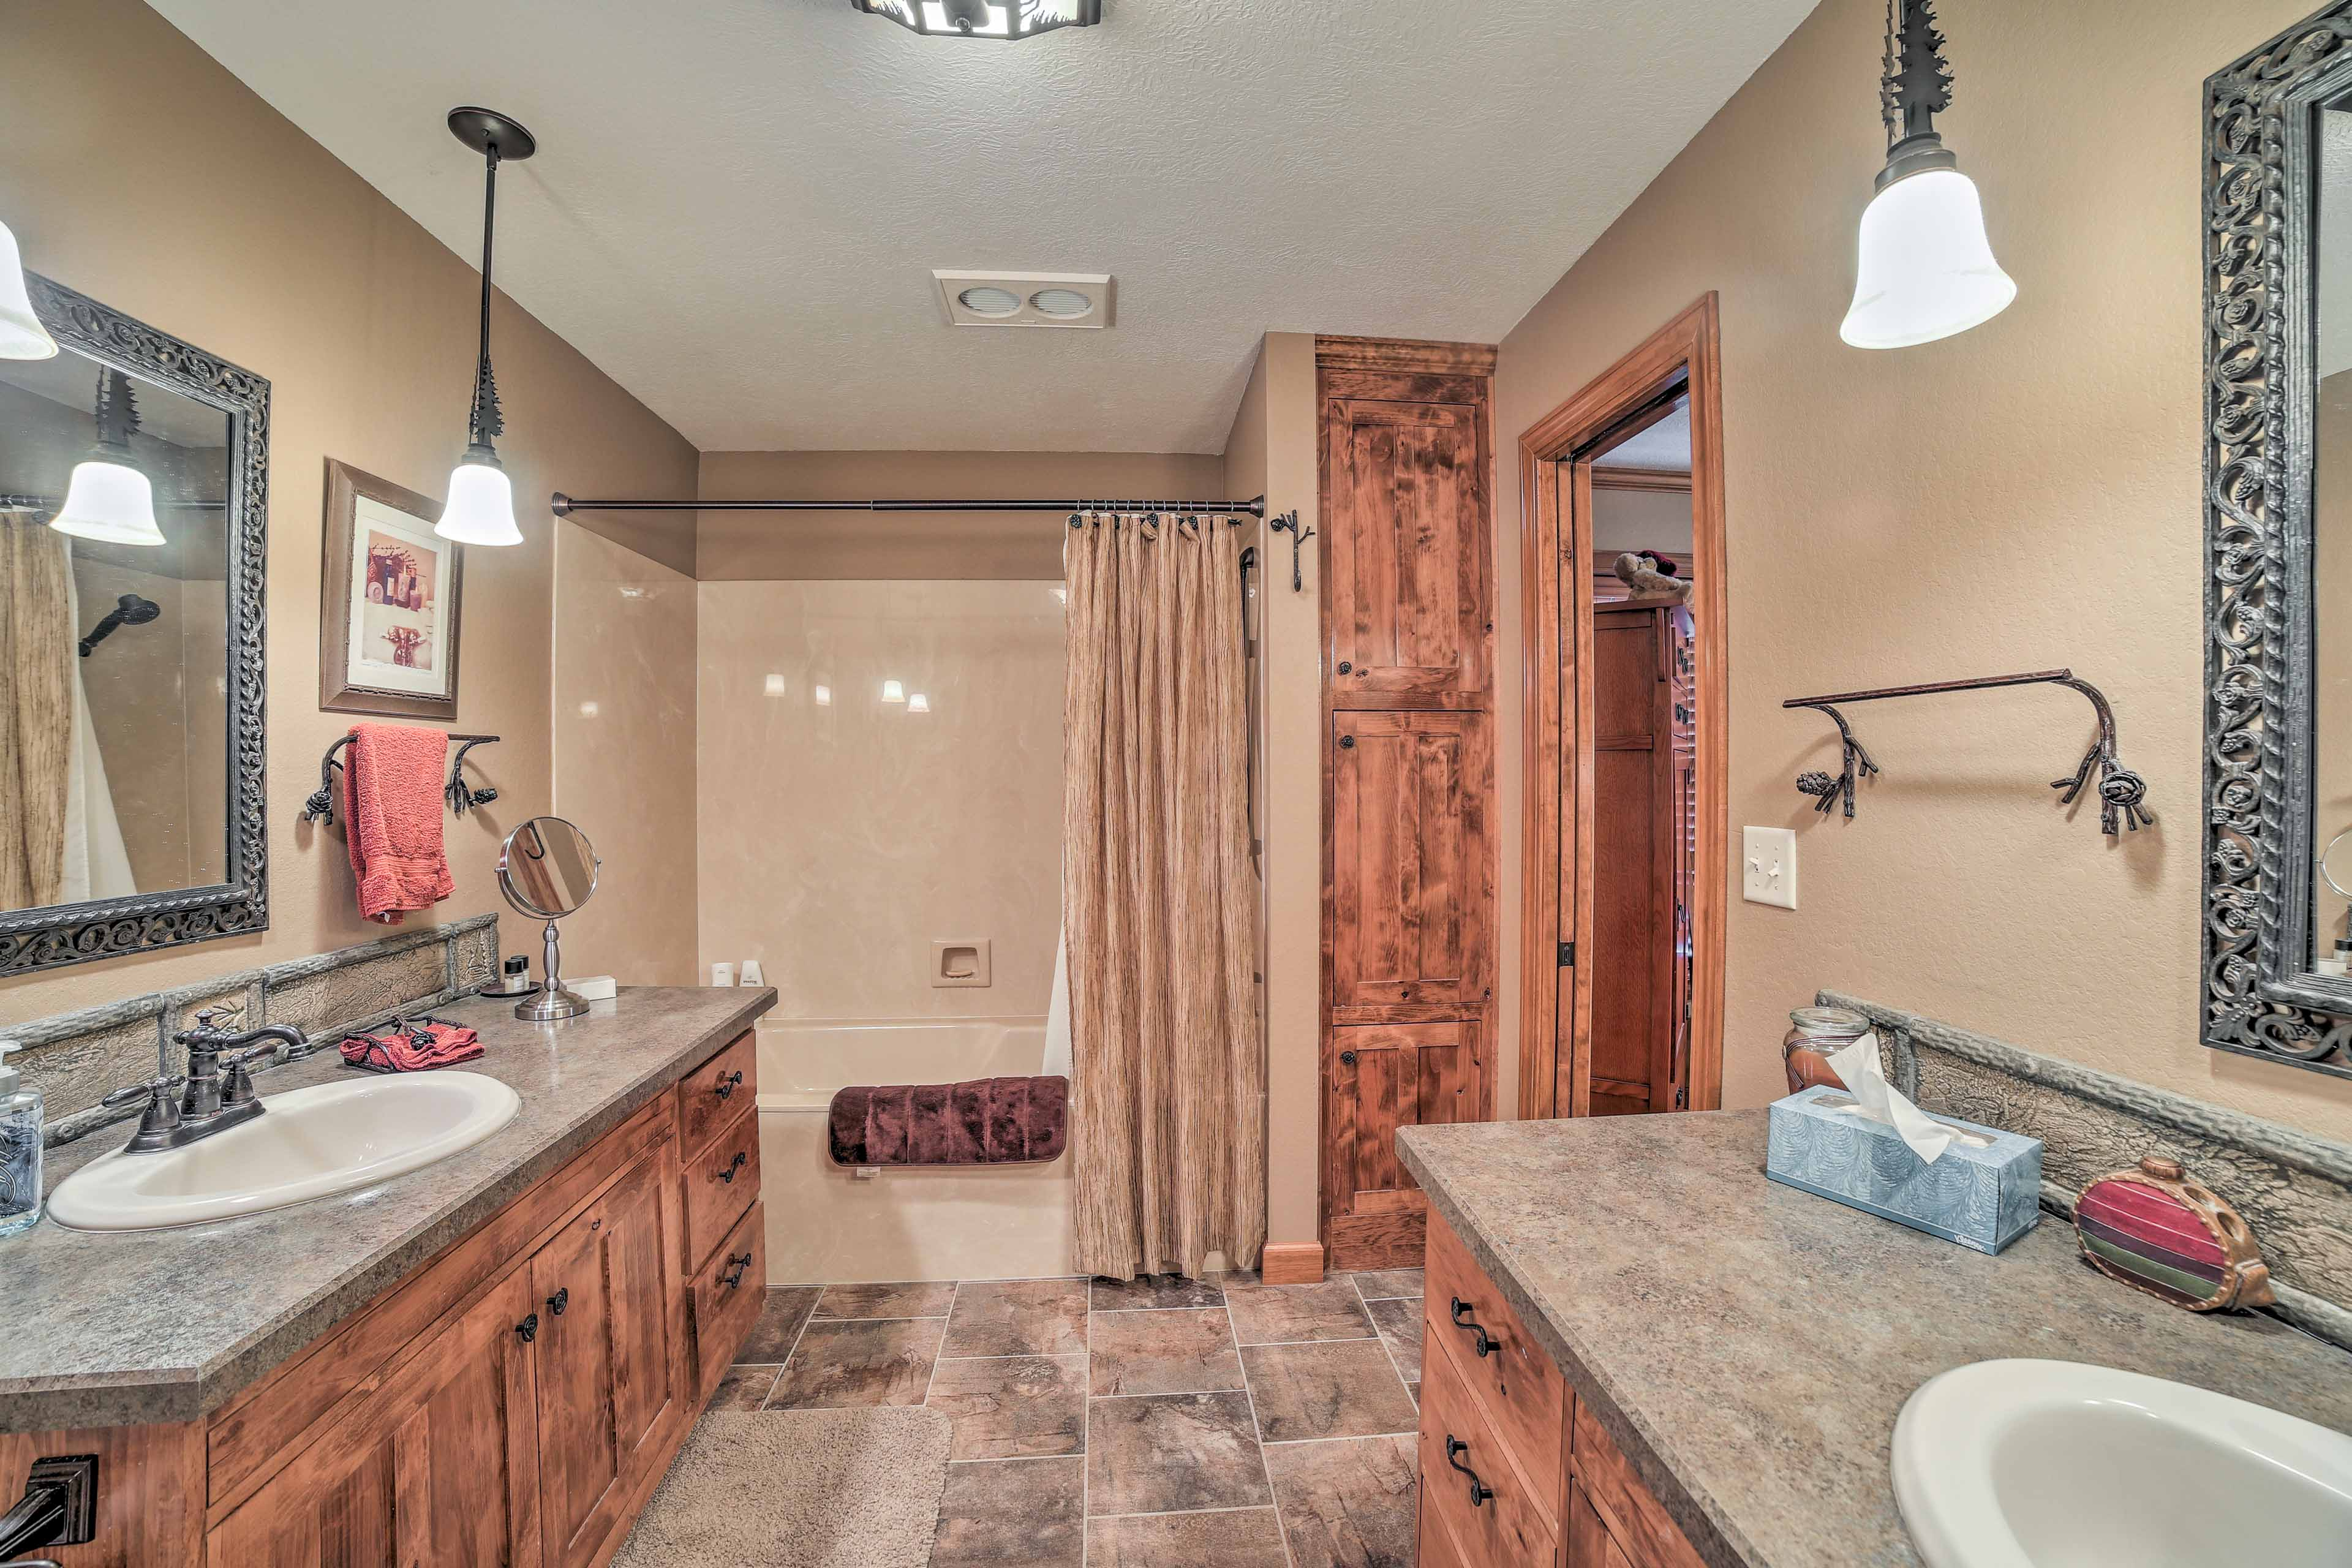 The en-suite bathroom features a shower-tub combo; 2 sinks provide ample space.